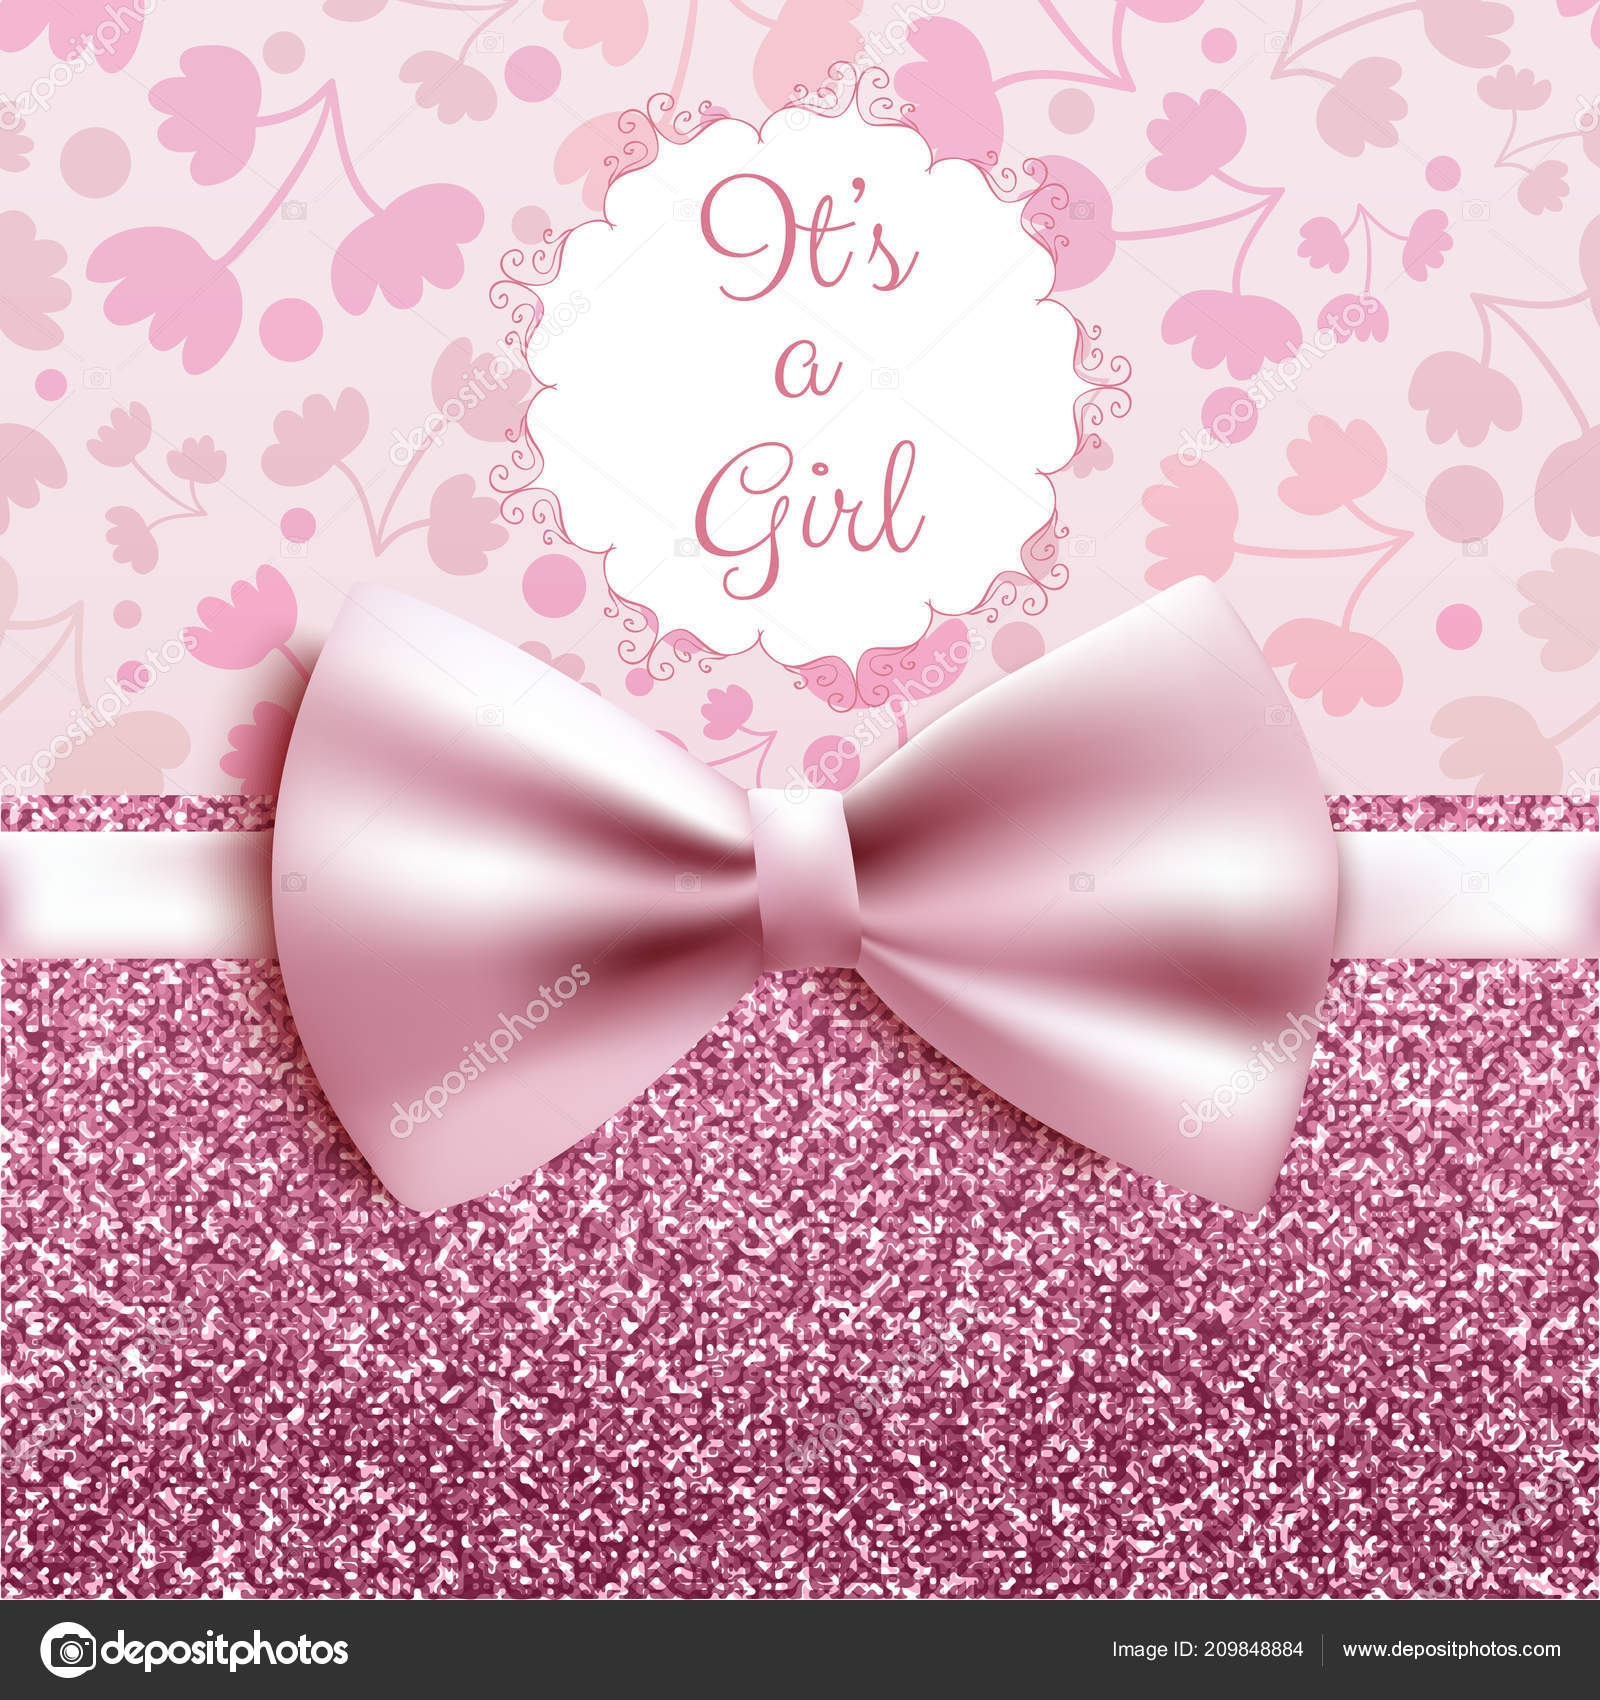 Girl baby shower cute card invitation pink bow vector illustration girl baby shower cute card invitation pink bow vector illustration vetores de stock stopboris Images